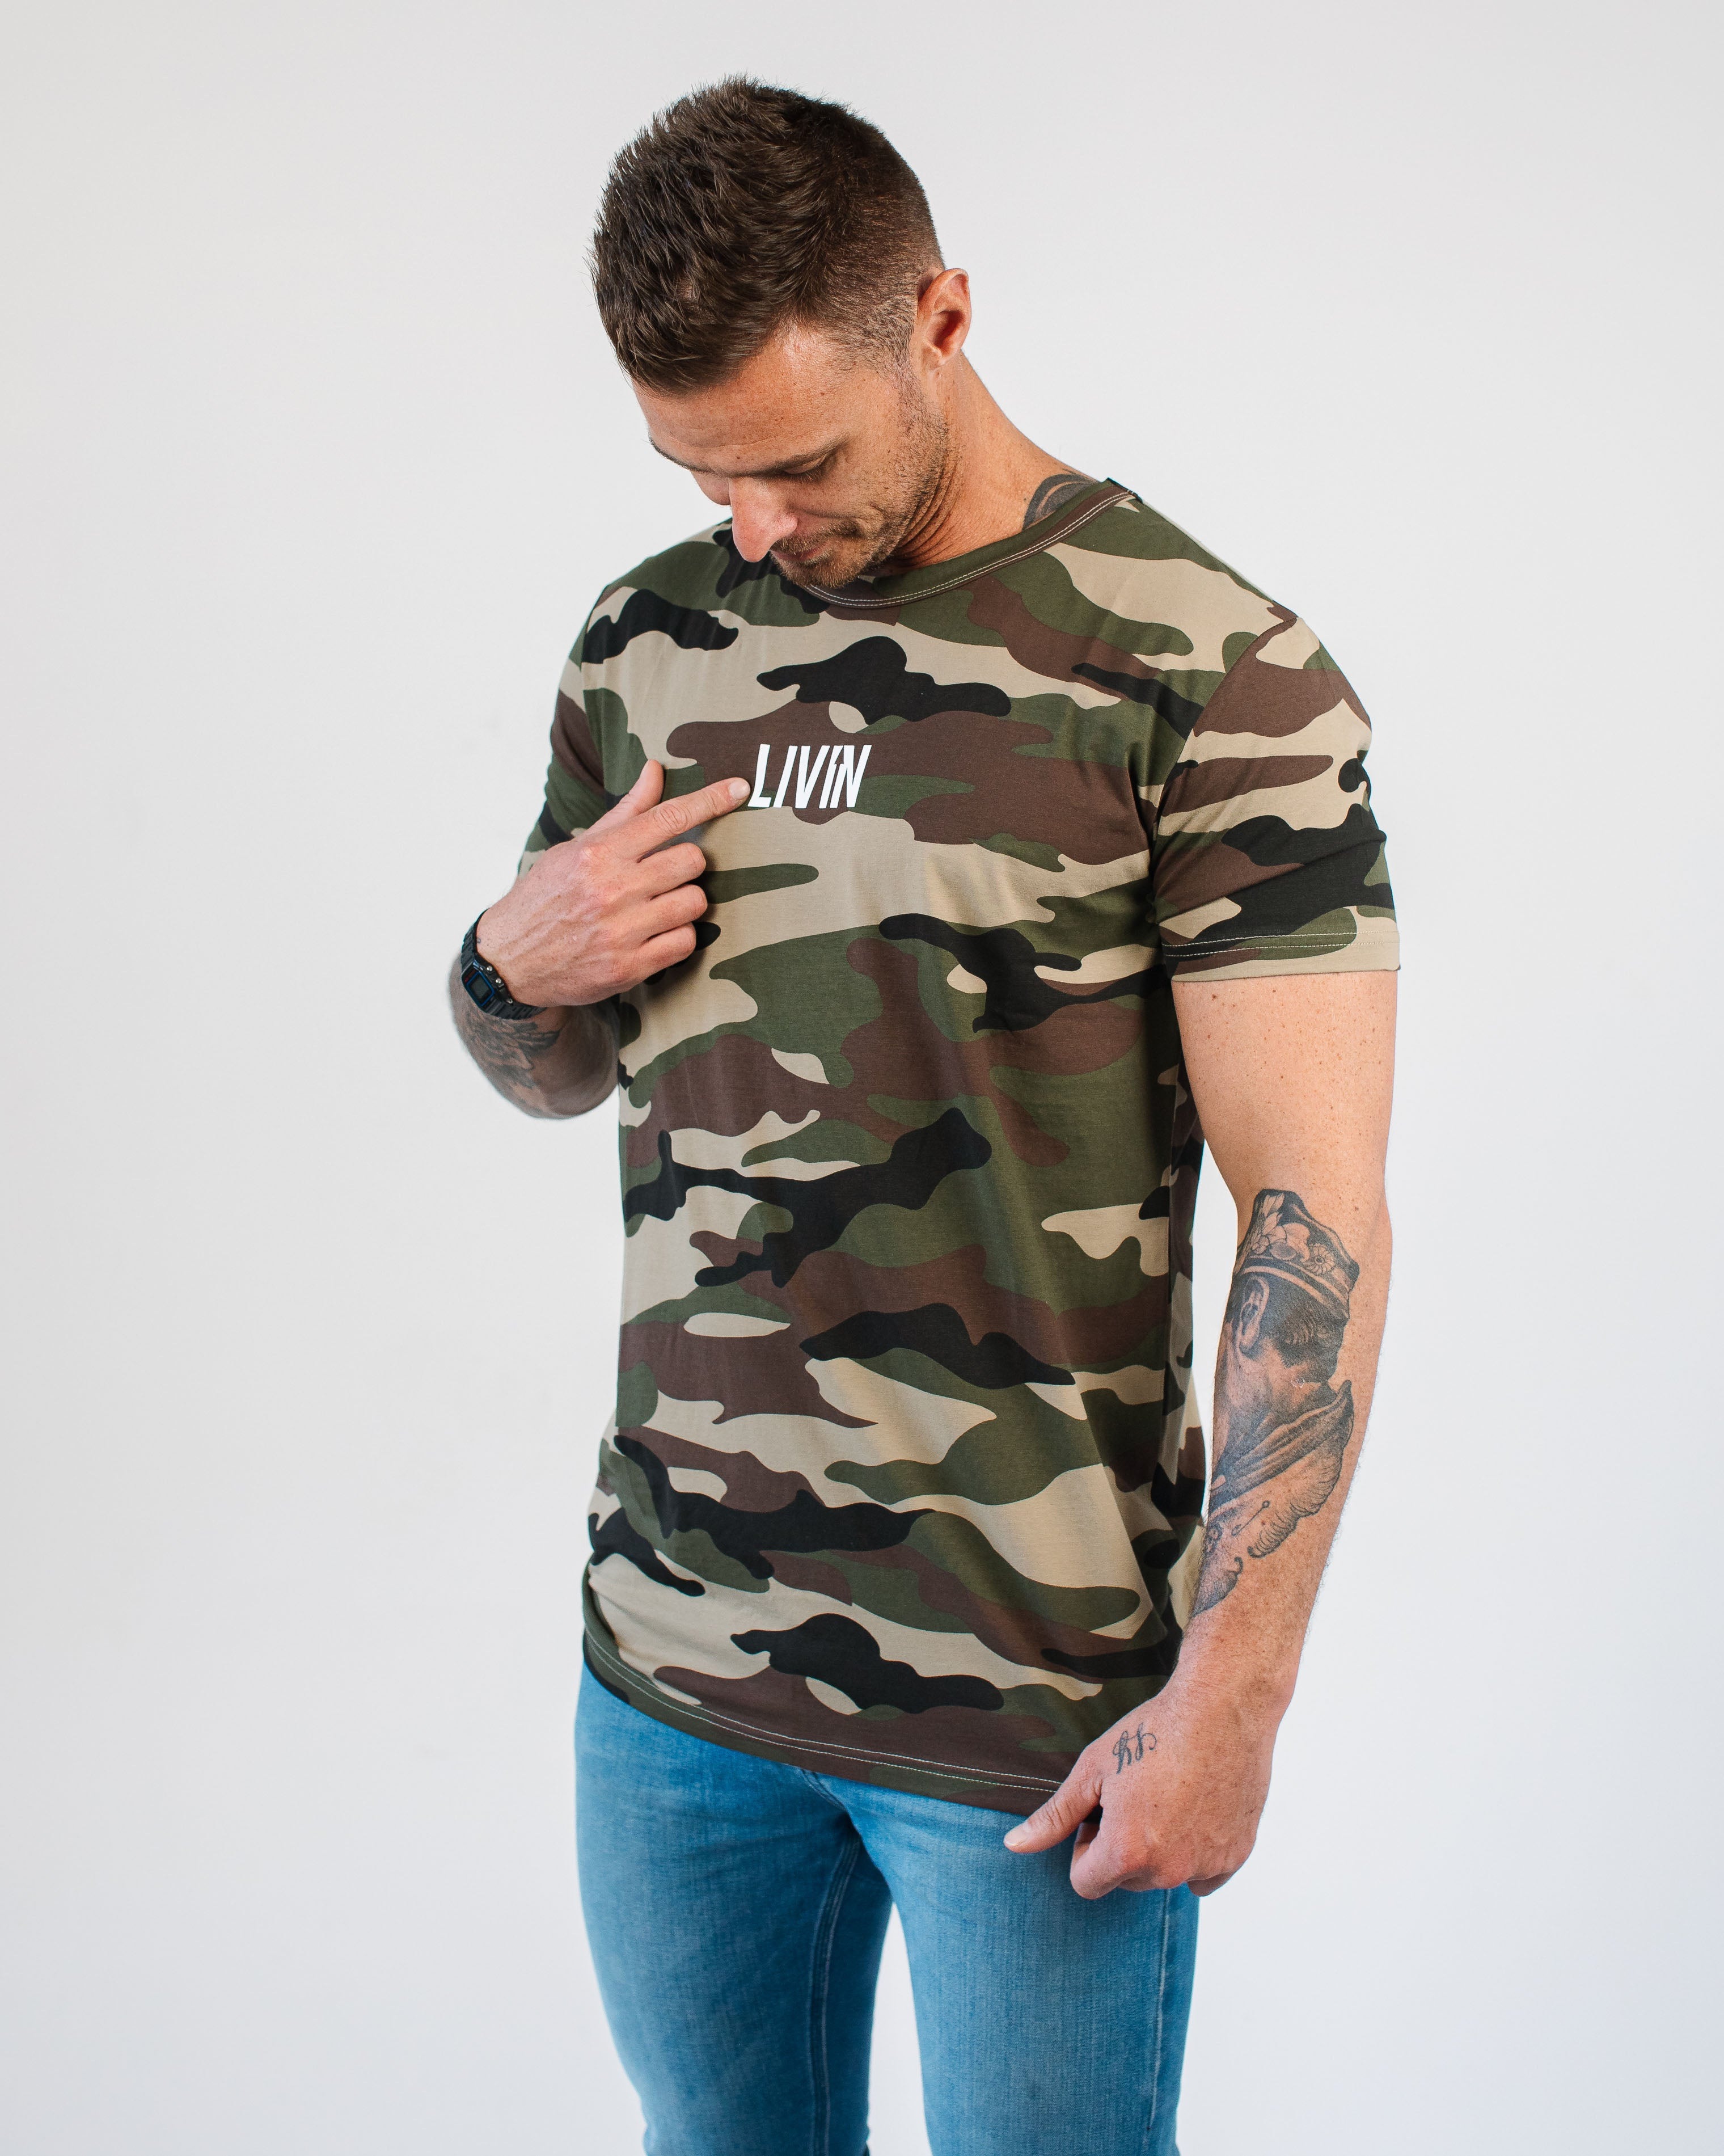 Simplify Tee Camo by LIVIN